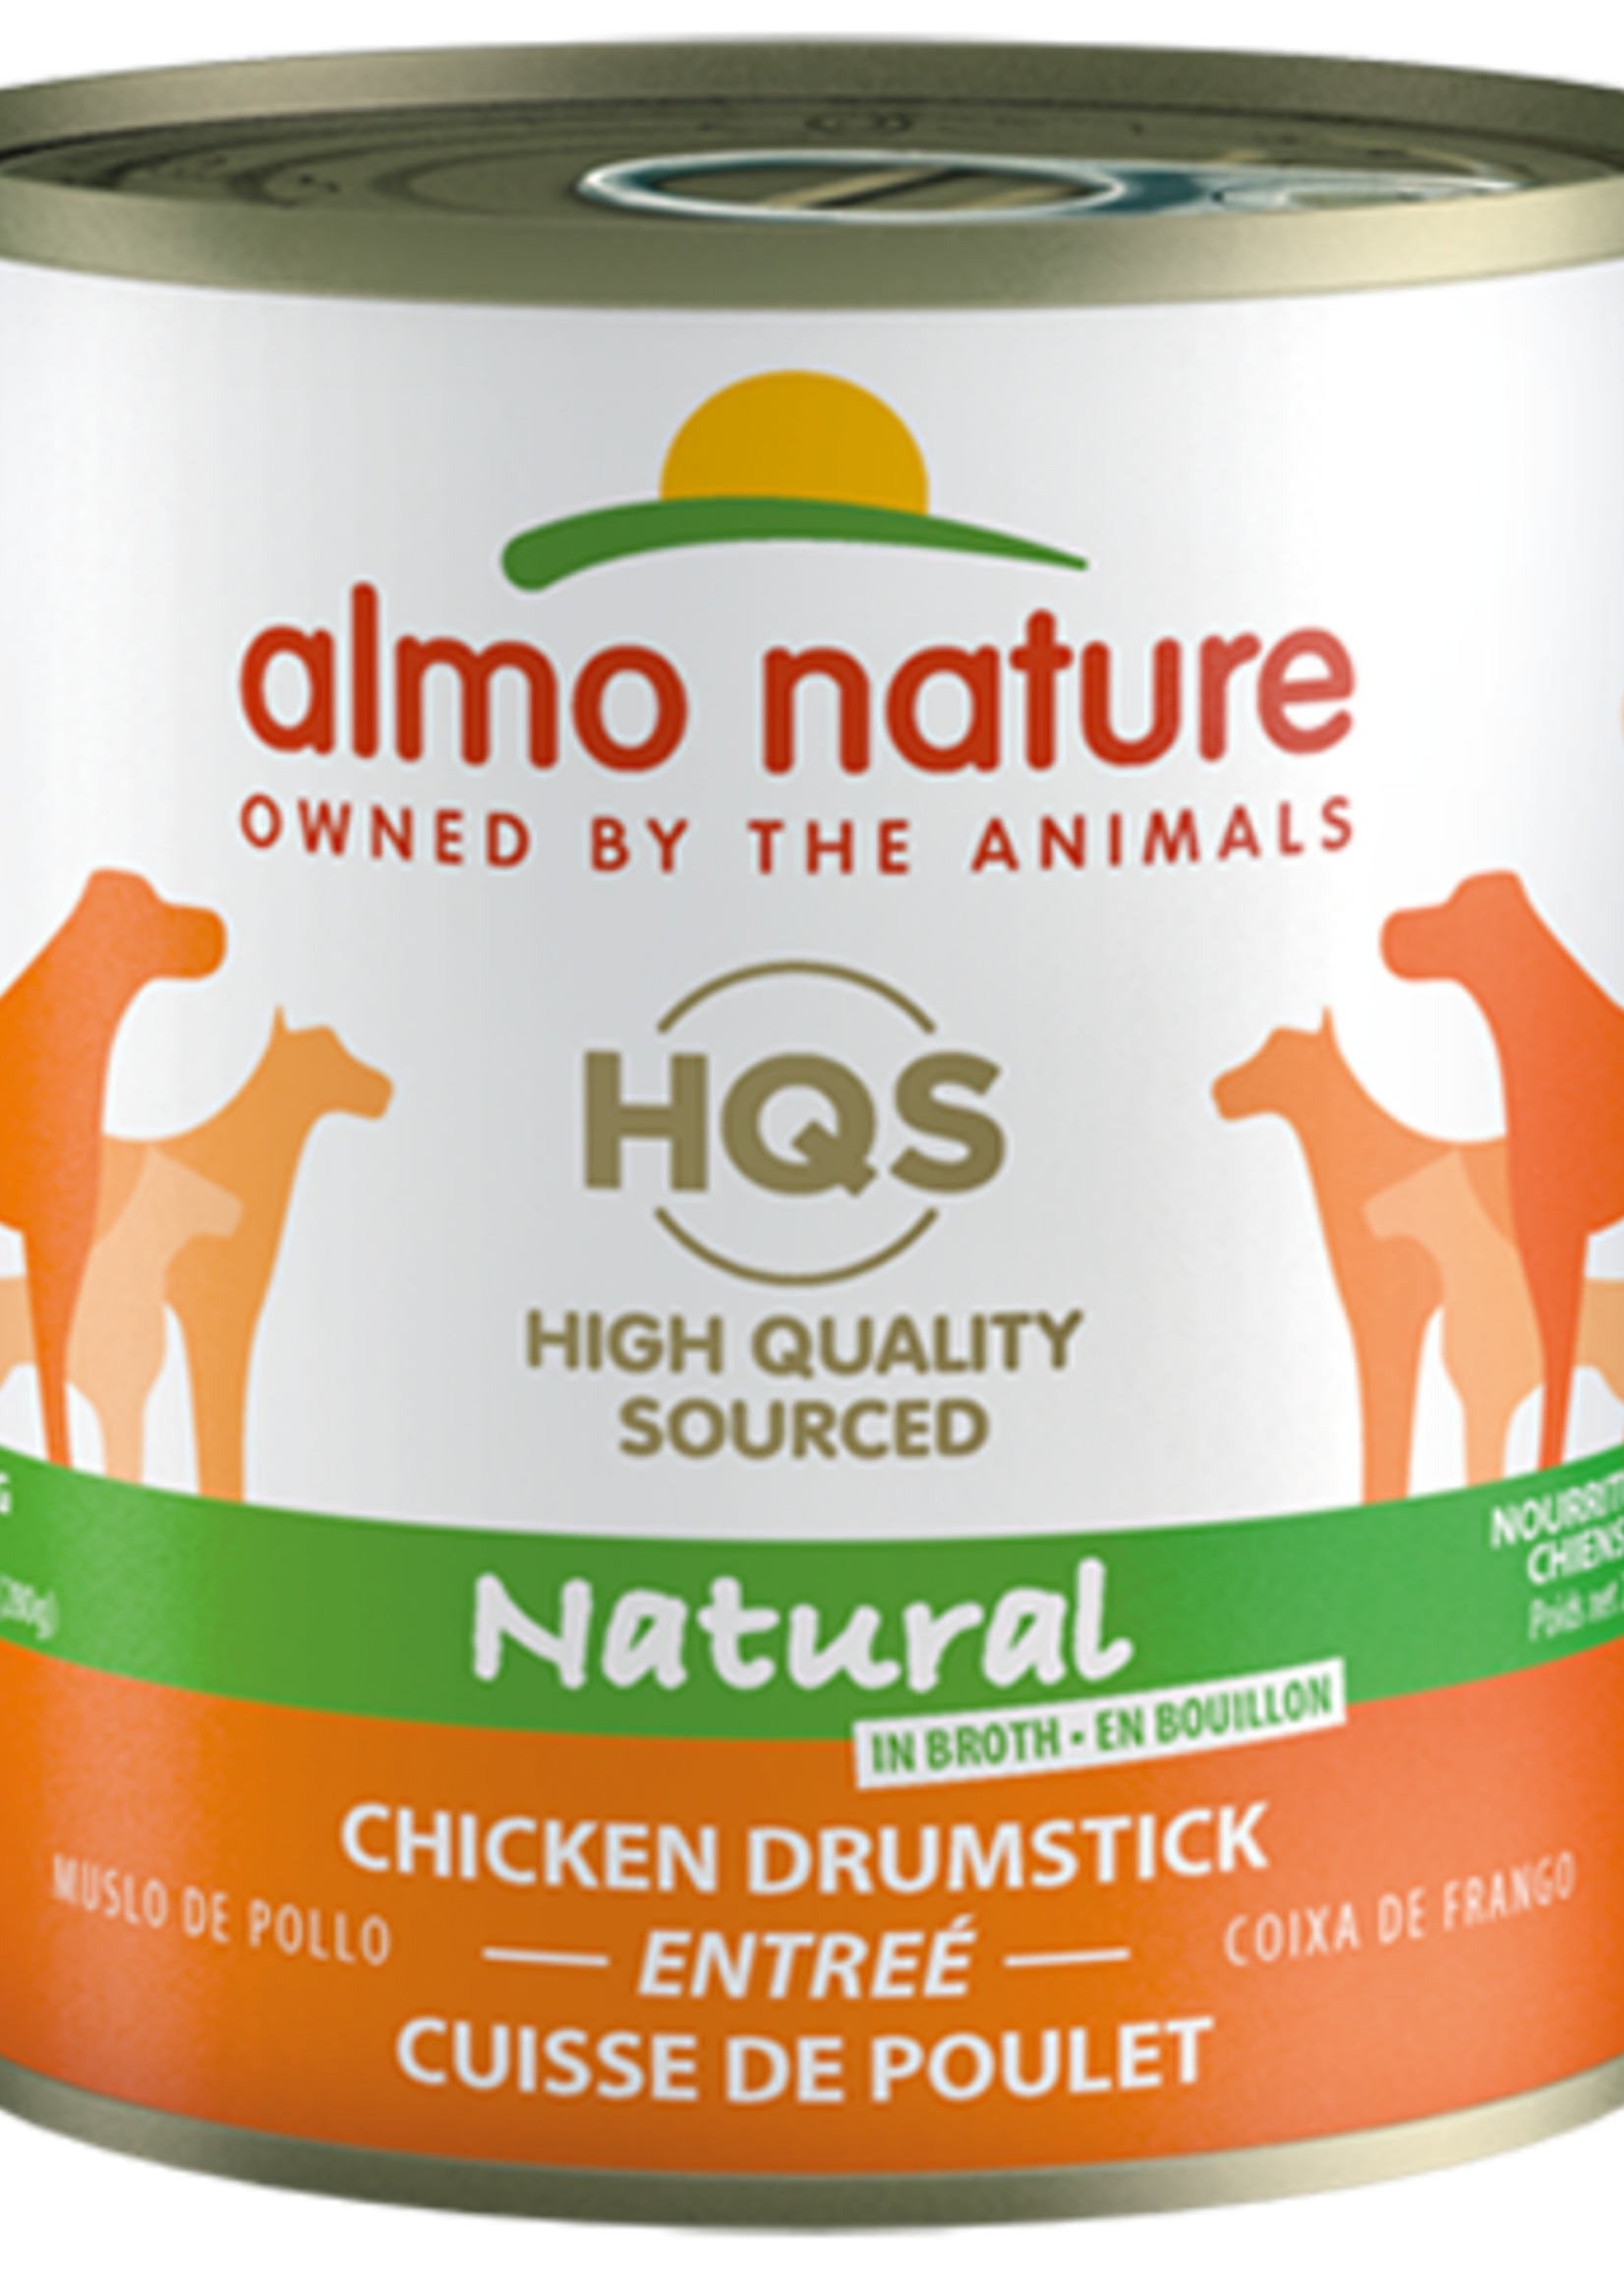 Almo Nature© Almo Nature HQS Natural Chicken Drumstick Entrée 280g